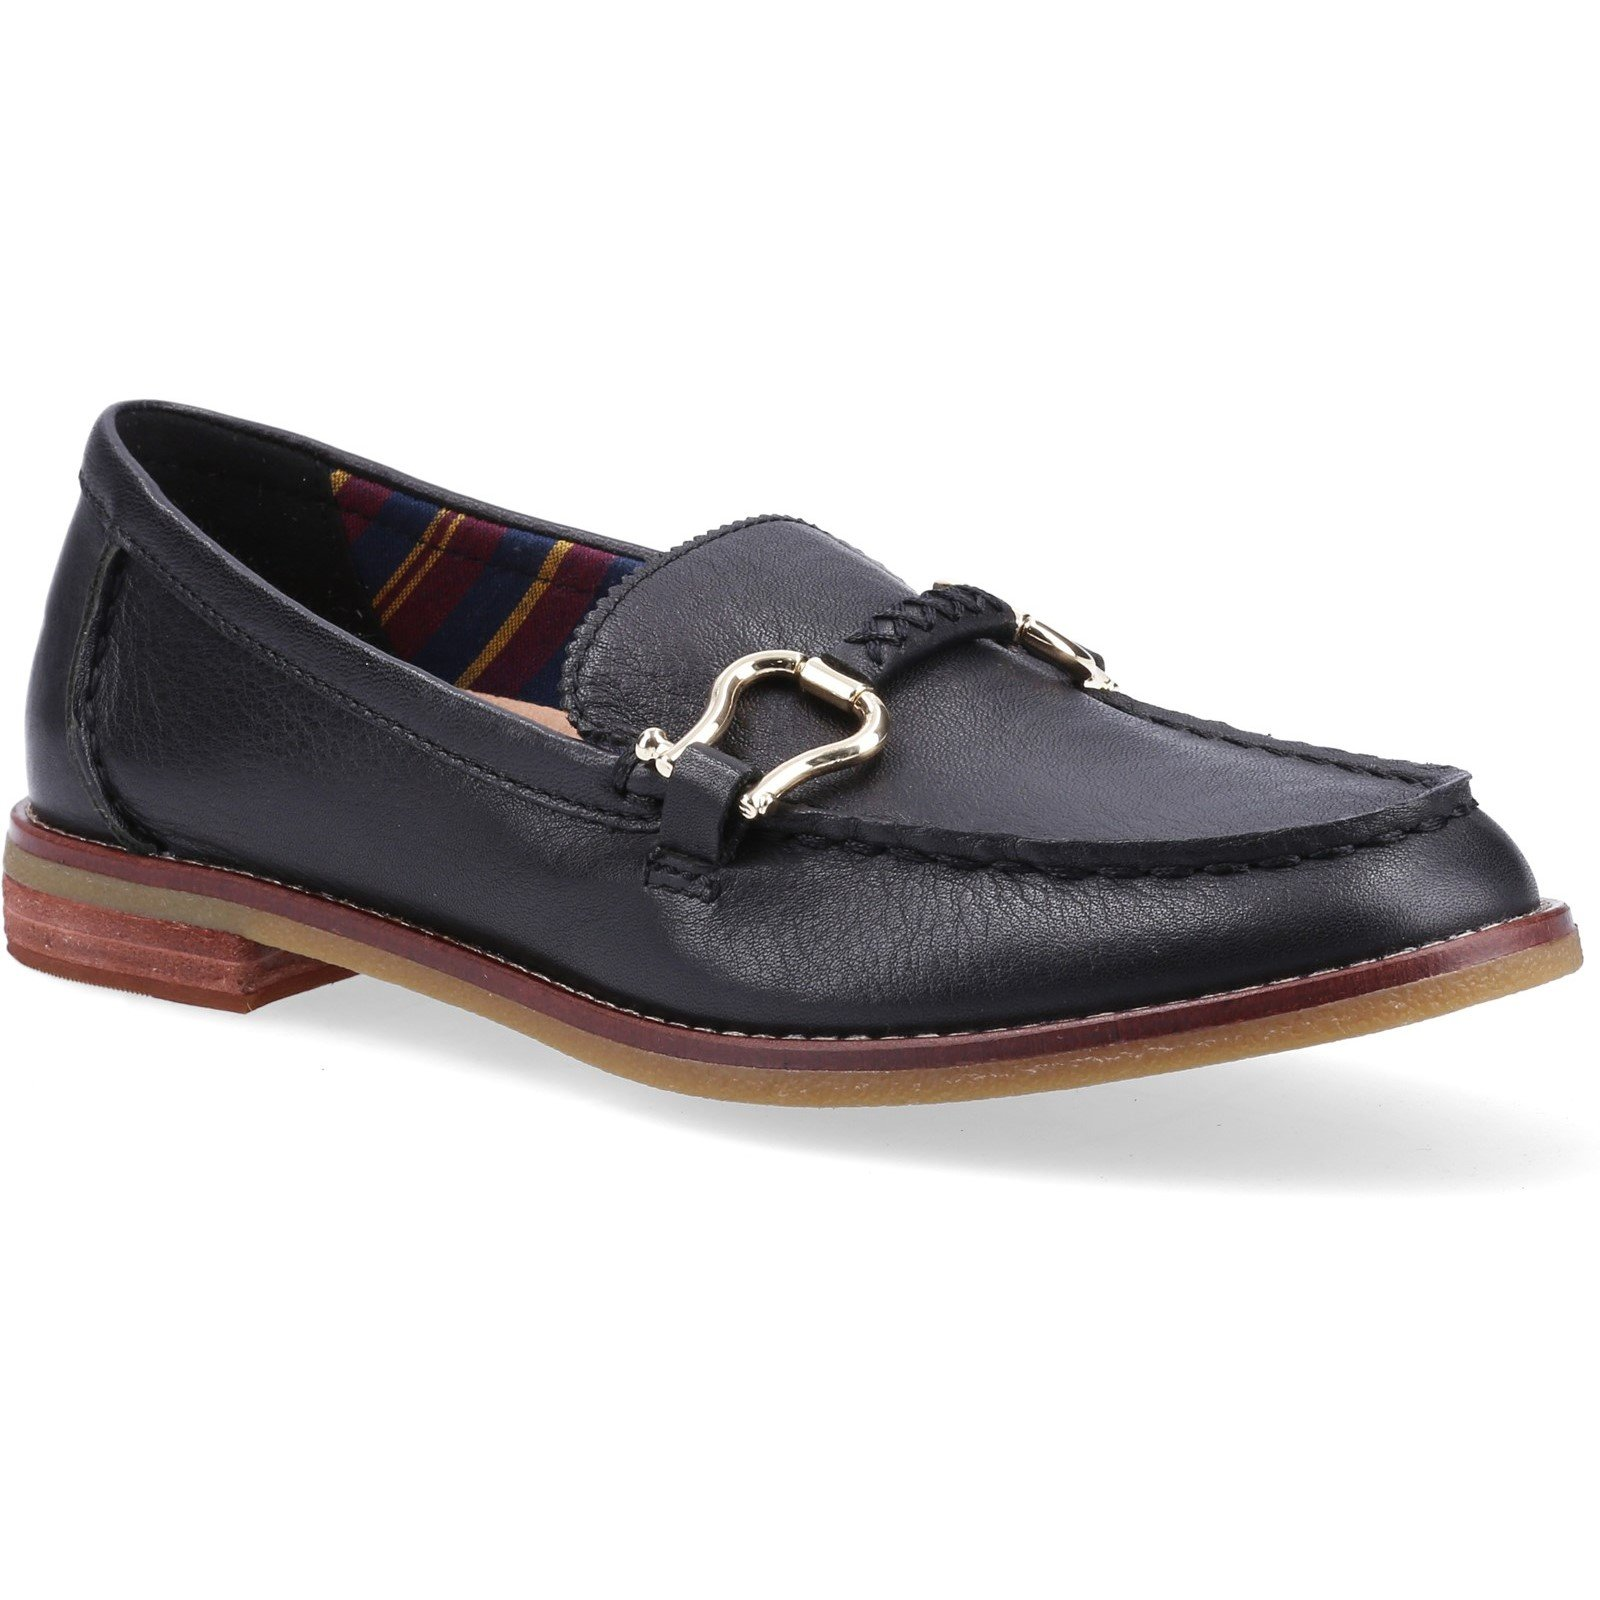 Sperry Women's Seaport Penny Plushwave Shackle Loafer Various Colours 32405 - Black 7